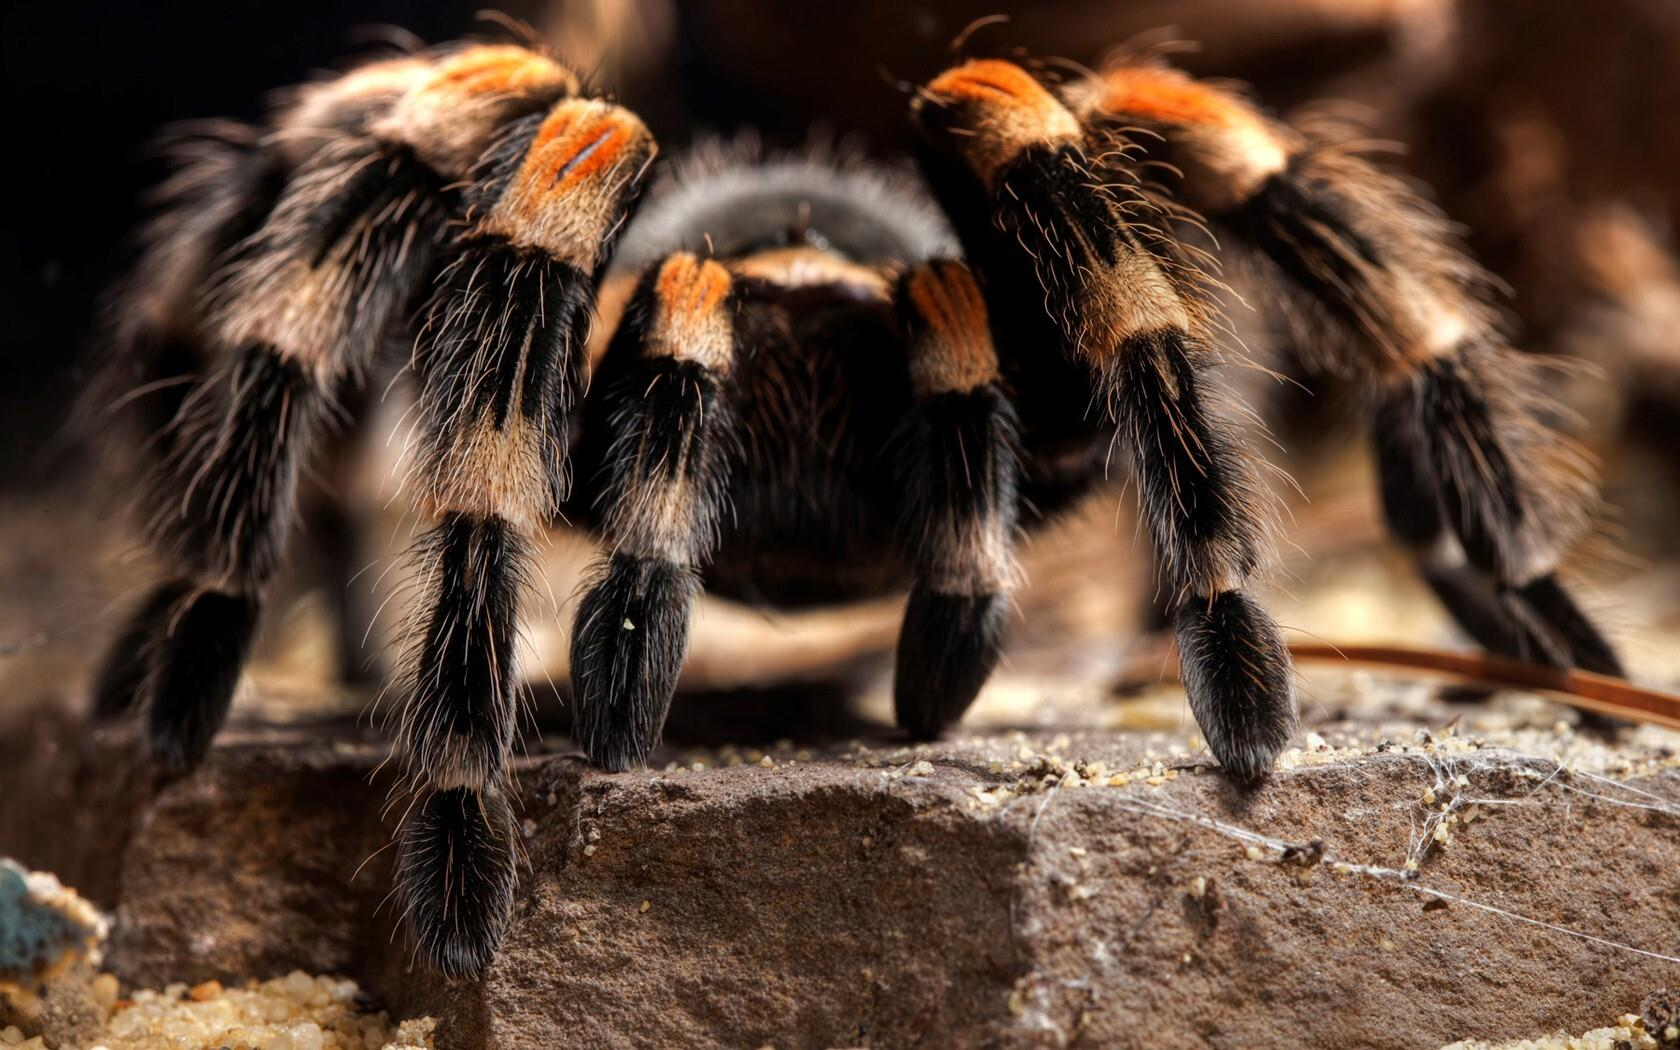 1680x1050 Big Hairy Spider Photo